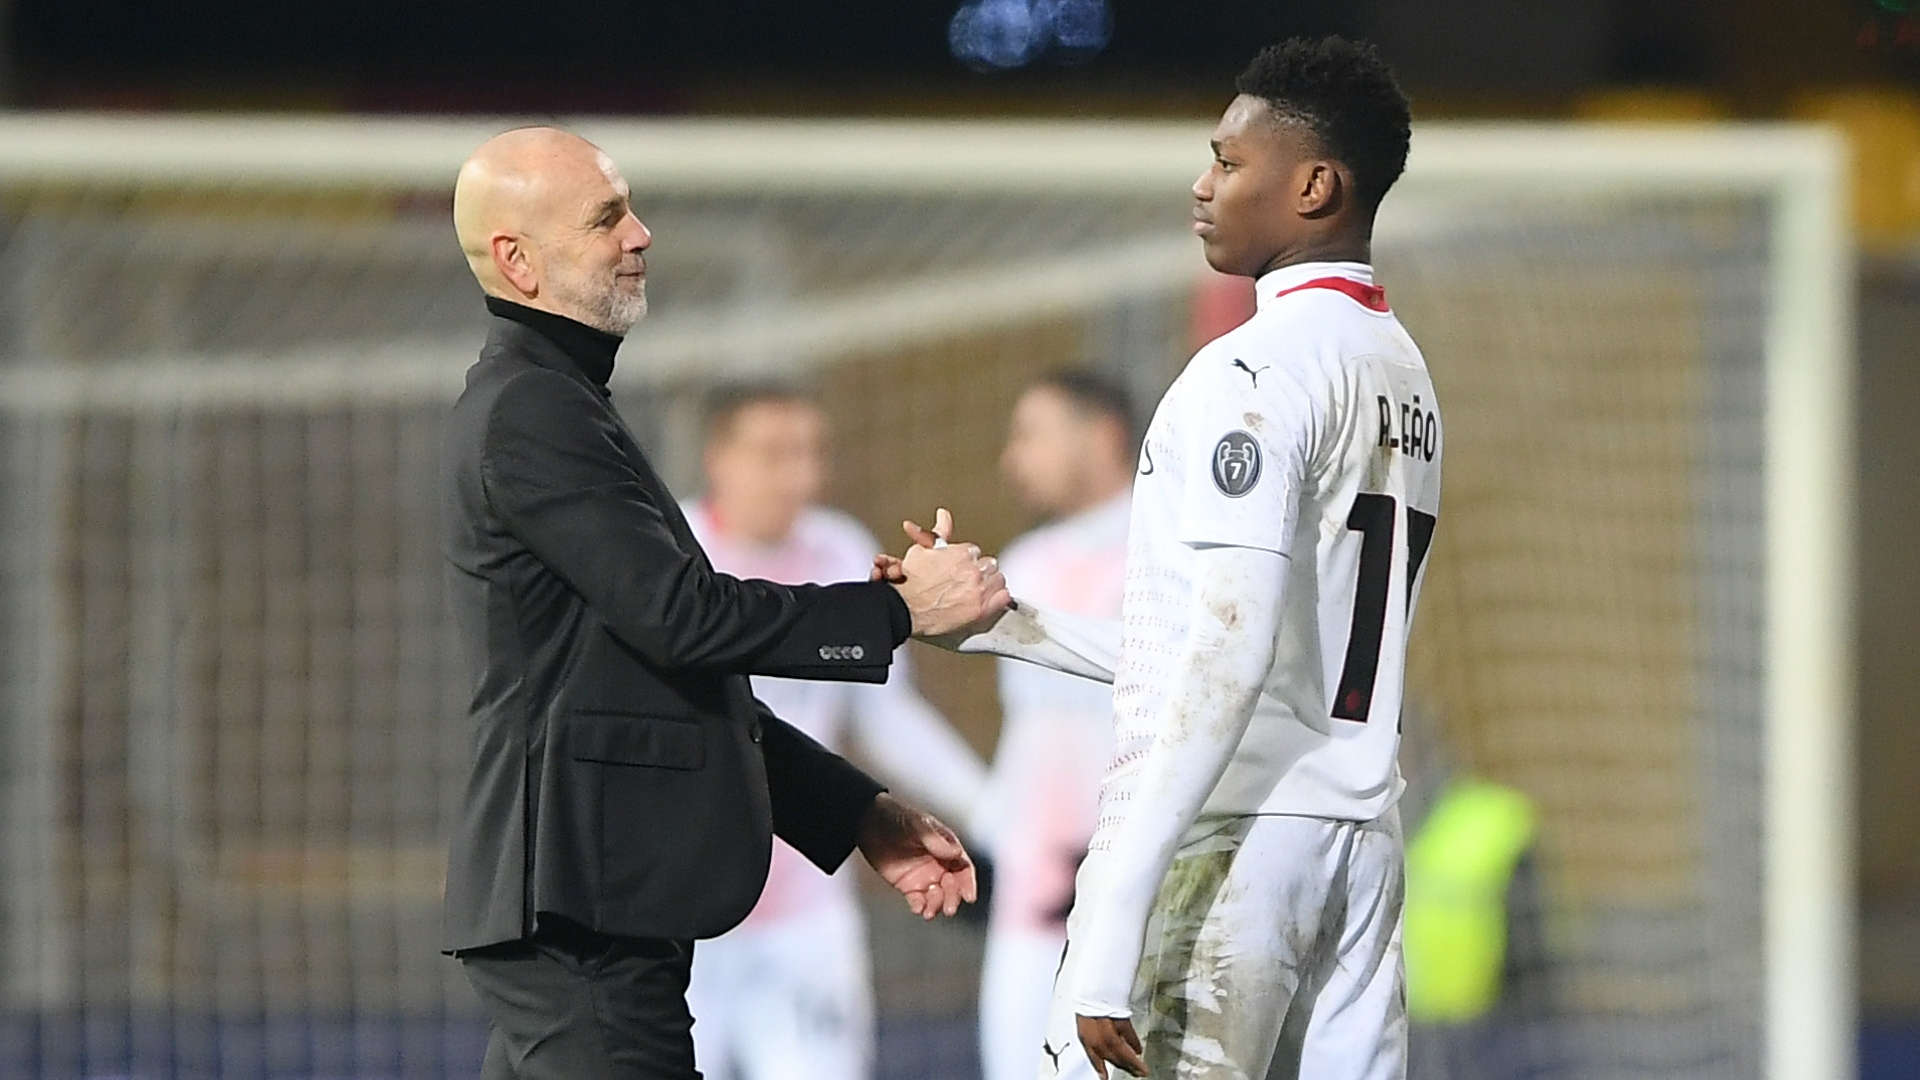 Pioli: 10-man Milan showed heart, intensity, passion and belief